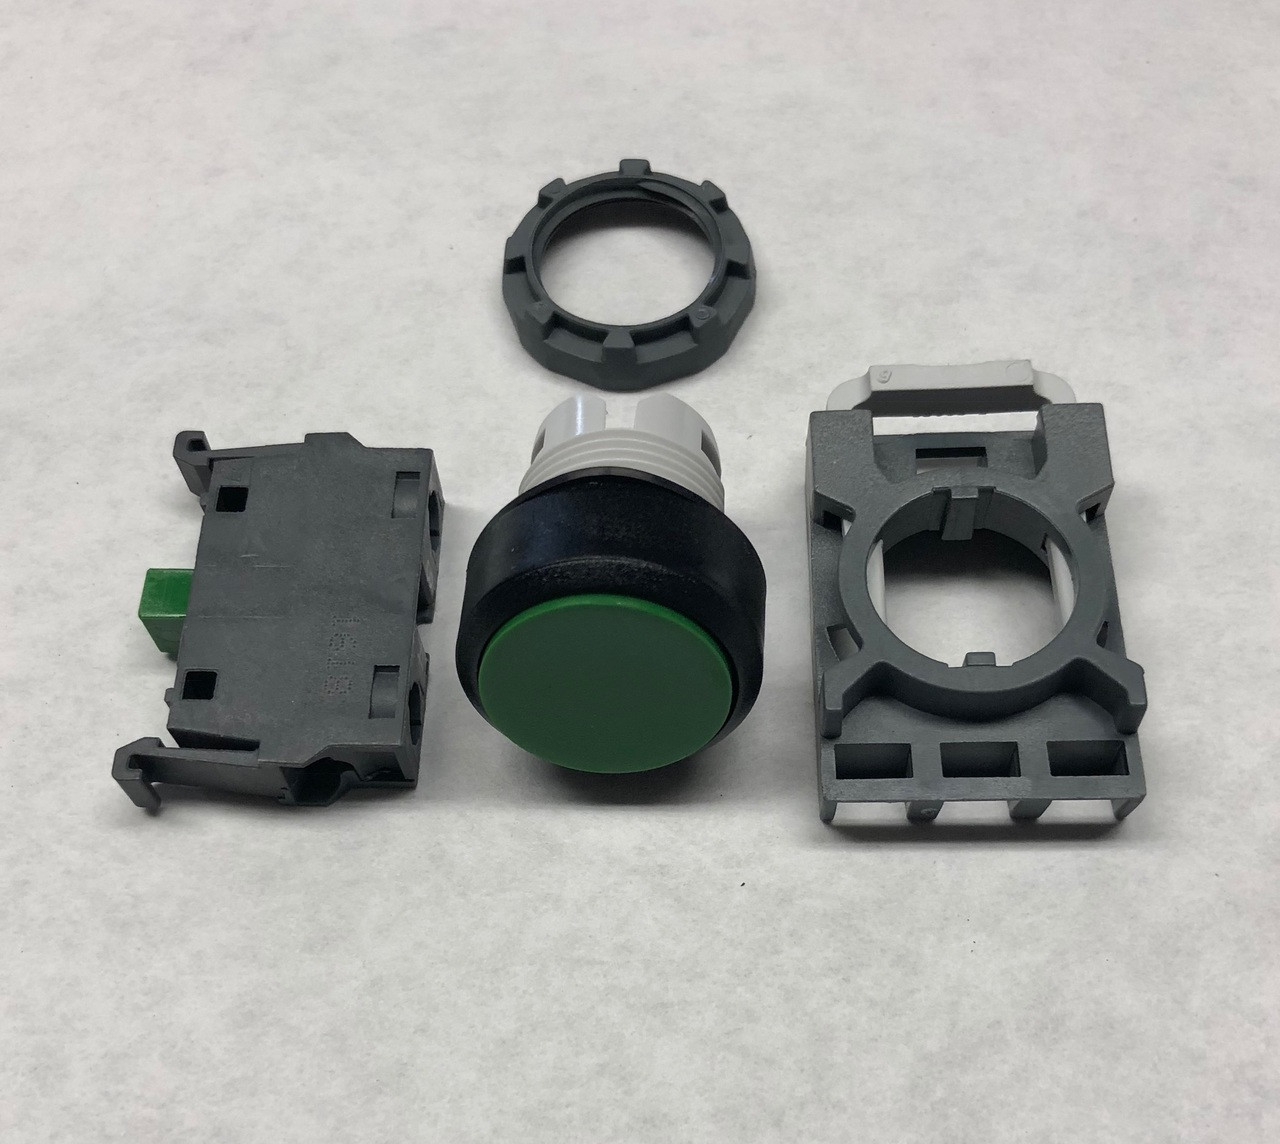 ProCut Parts - KG-32, KG-32MP & KG-32XP - Green Button - M502264